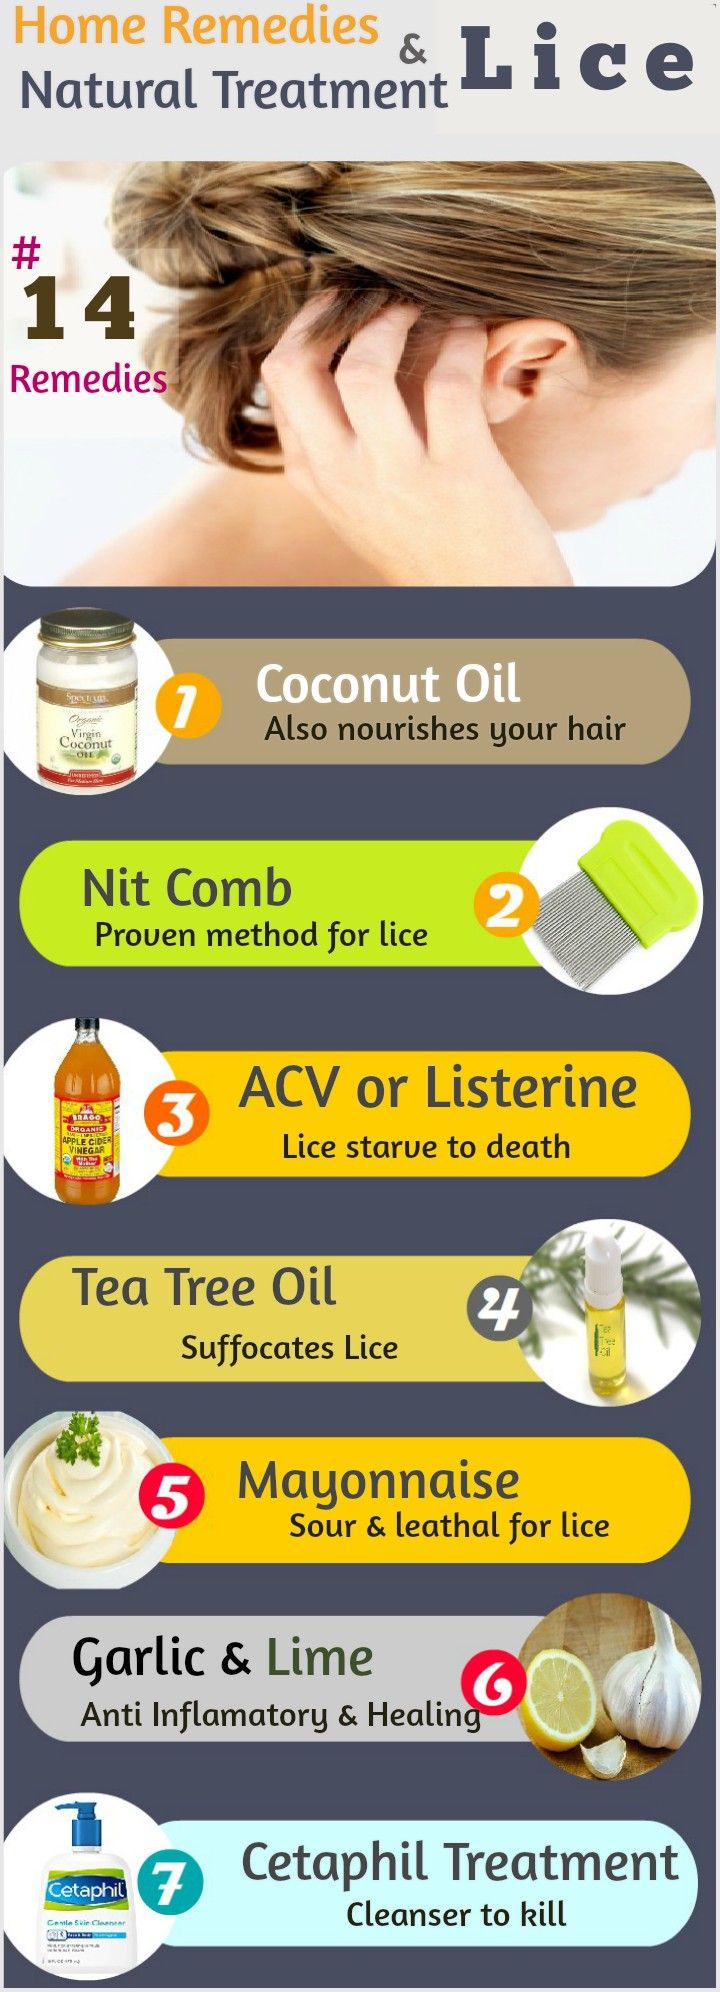 Lice home remedies and natural treatment salt water coconut oil